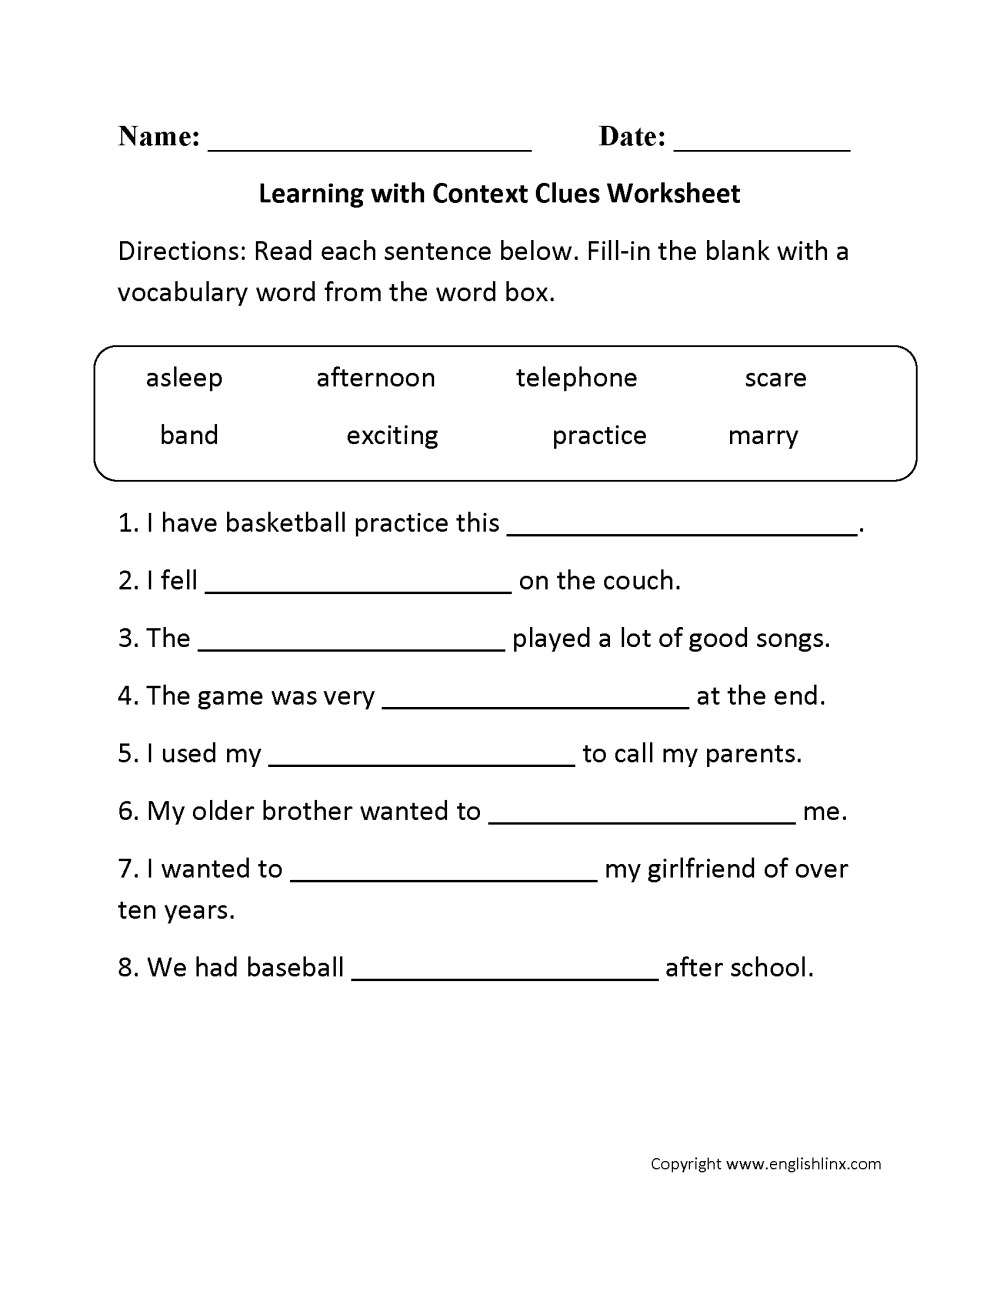 medium resolution of Context Clues Worksheets For 1st Grade   Printable Worksheets and  Activities for Teachers